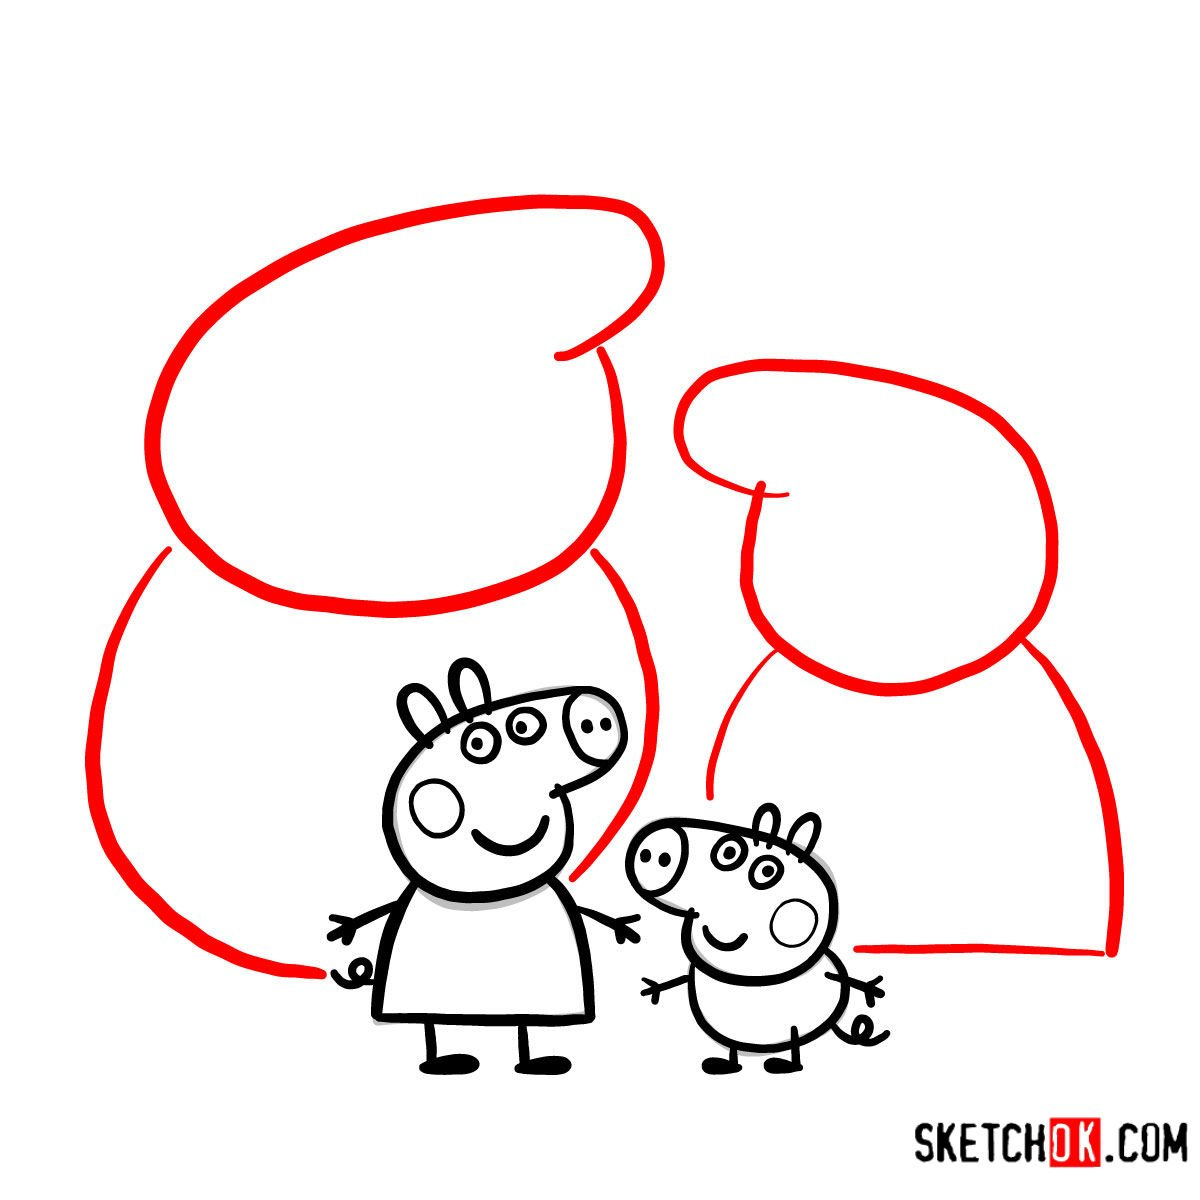 How to draw Peppa Pig's family - step 12